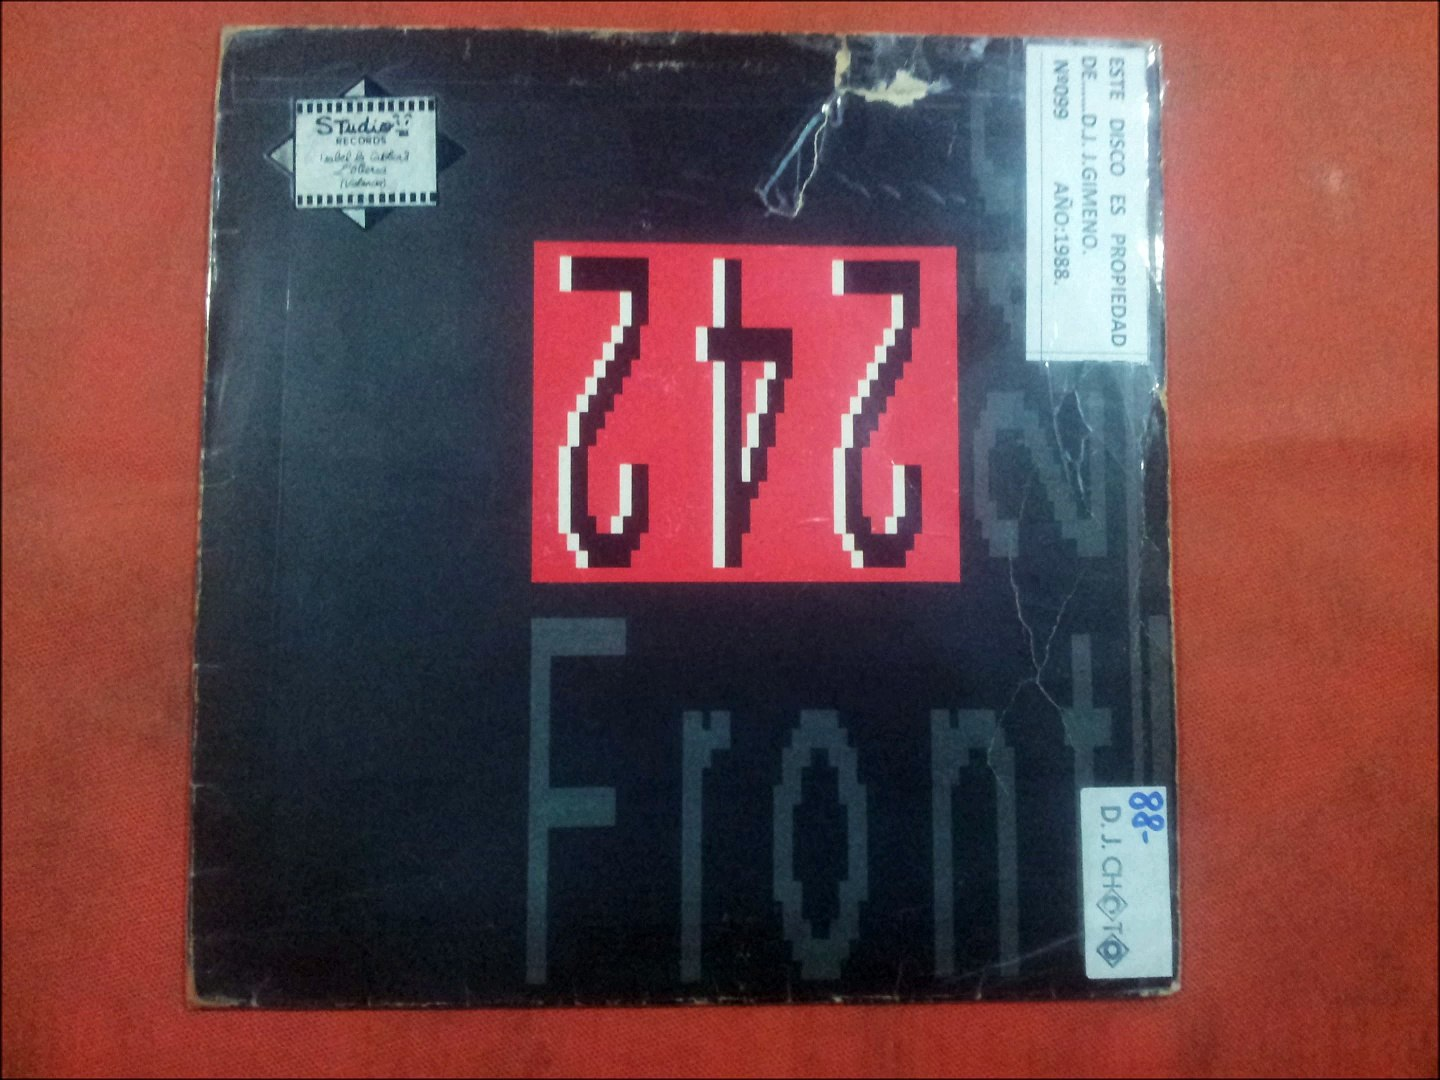 FRONT 242.''FRONT BY FRONT.''.(FIRST IN-FIRST OUT.)(12'' LP.)(1988.)